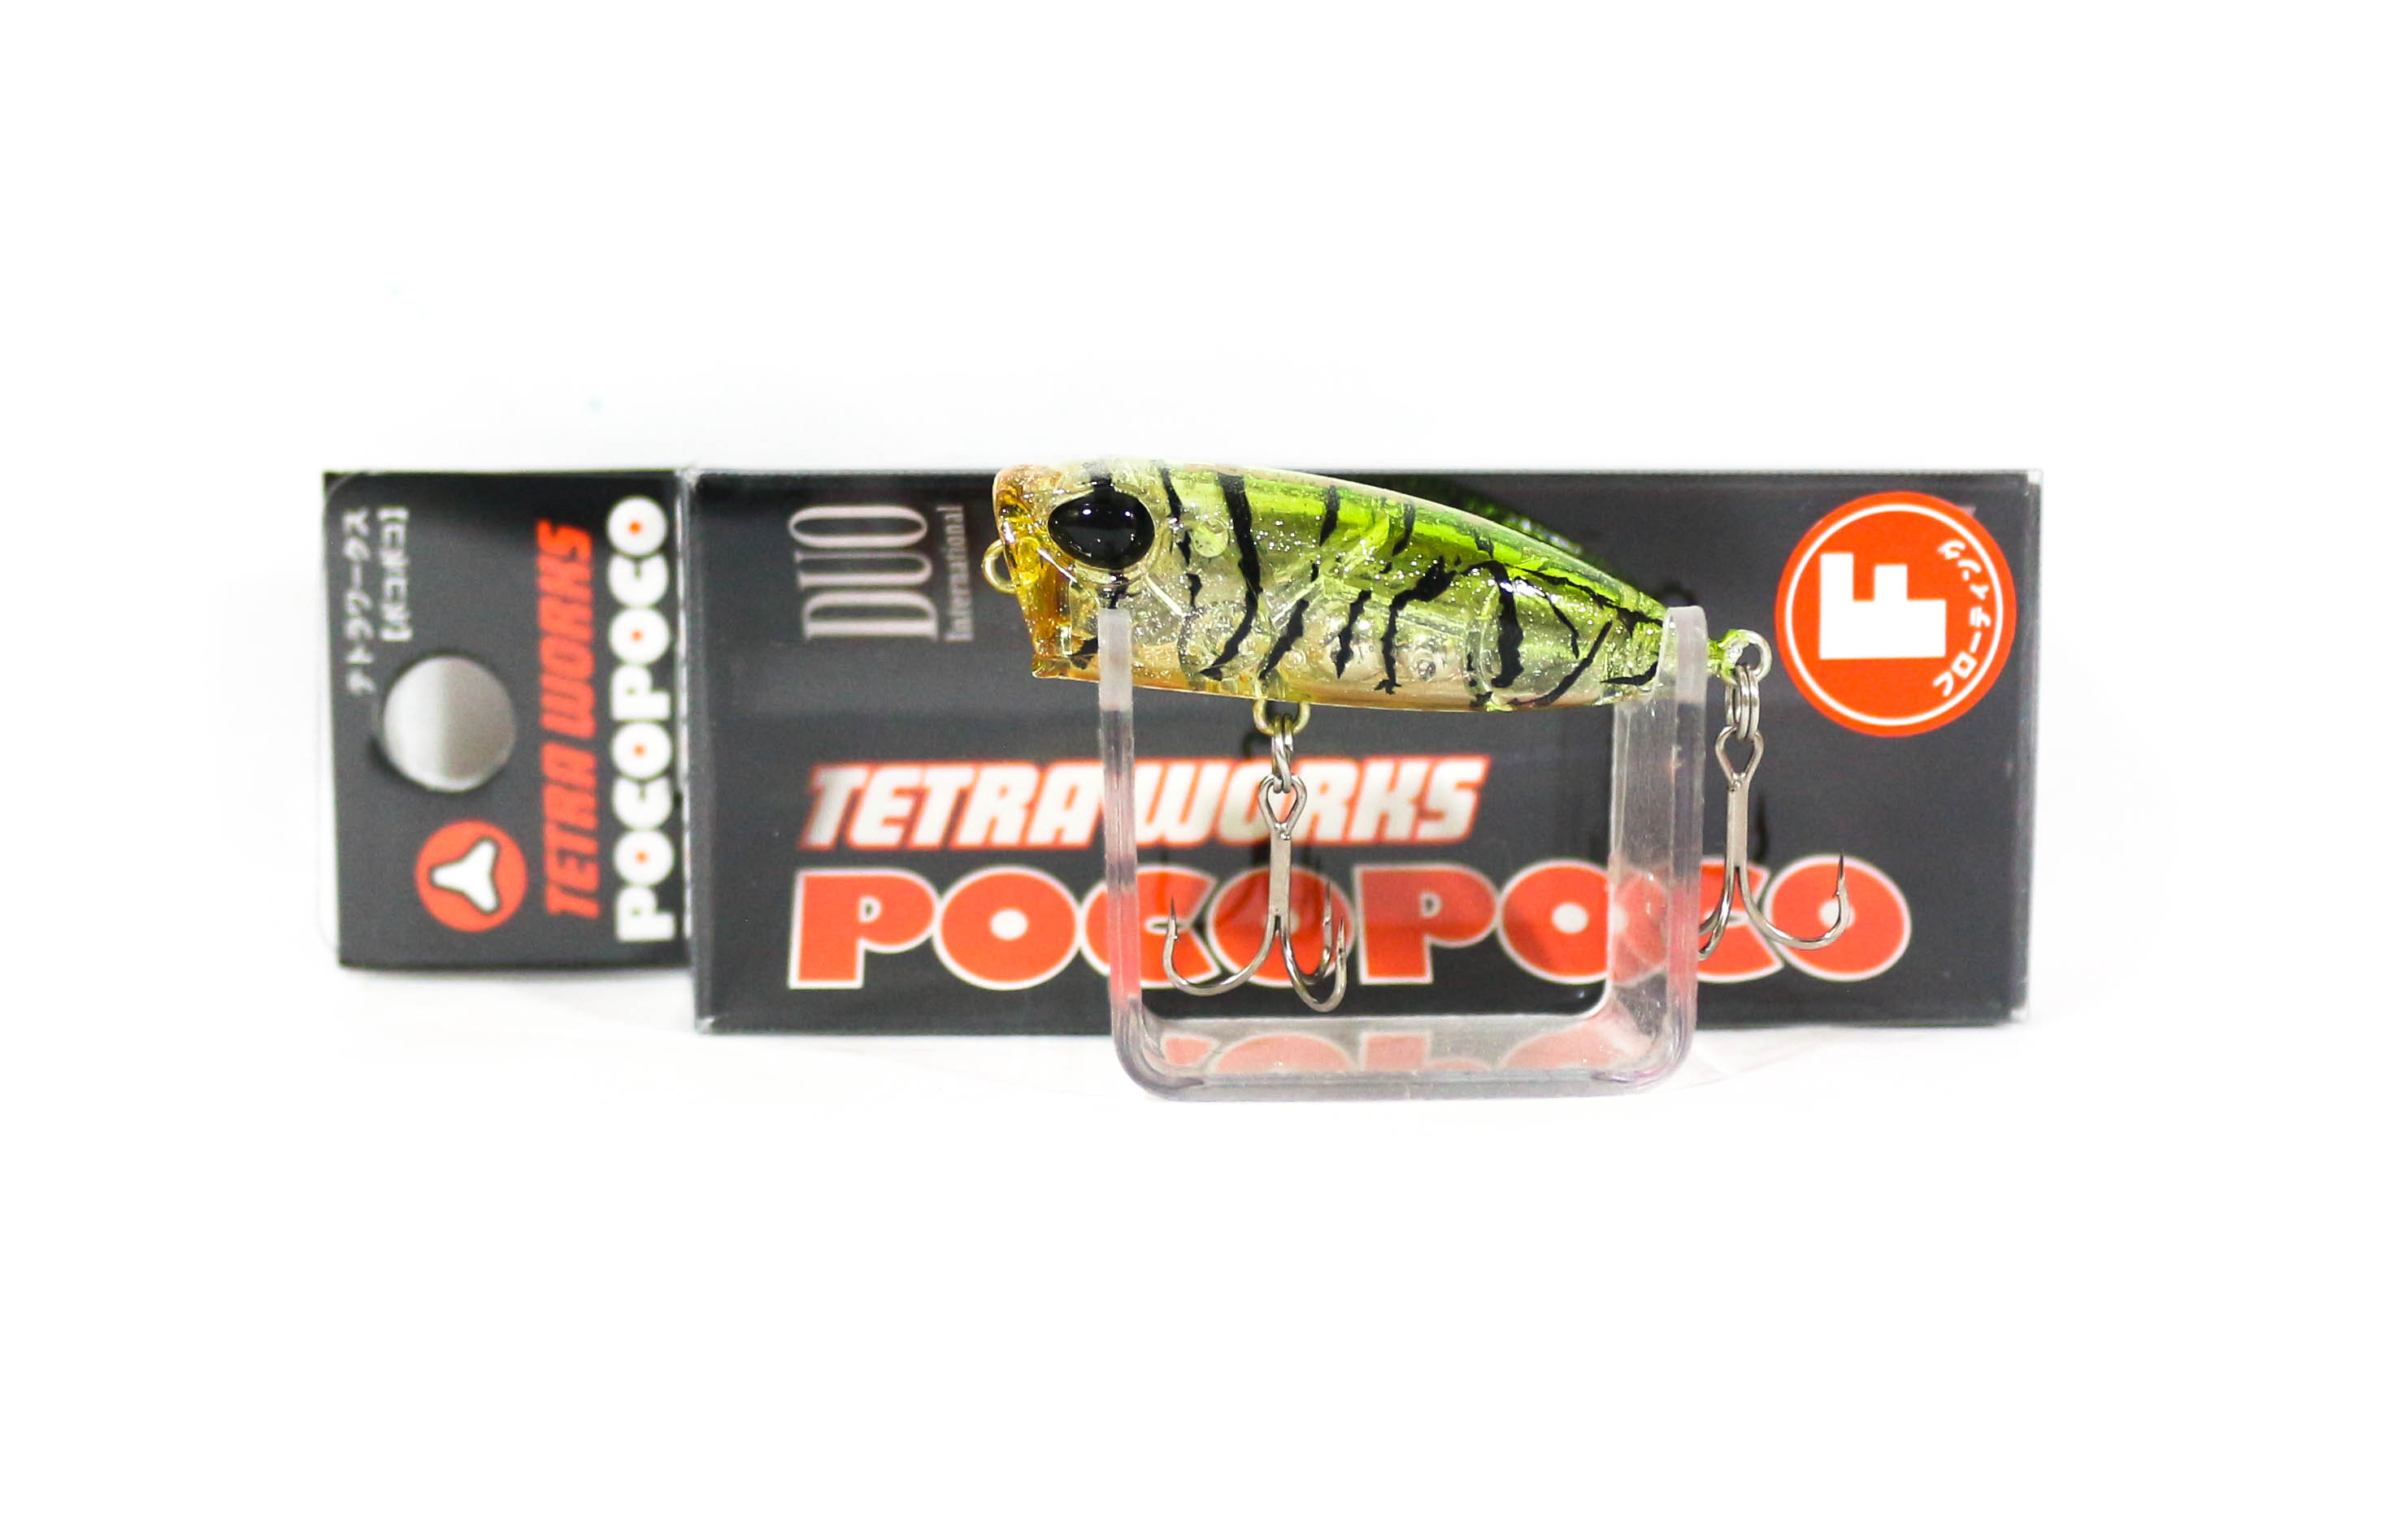 Duo Tetra Works Poco Poco Mini Popper 40 mm Floating Lure CCC0473 (4168)